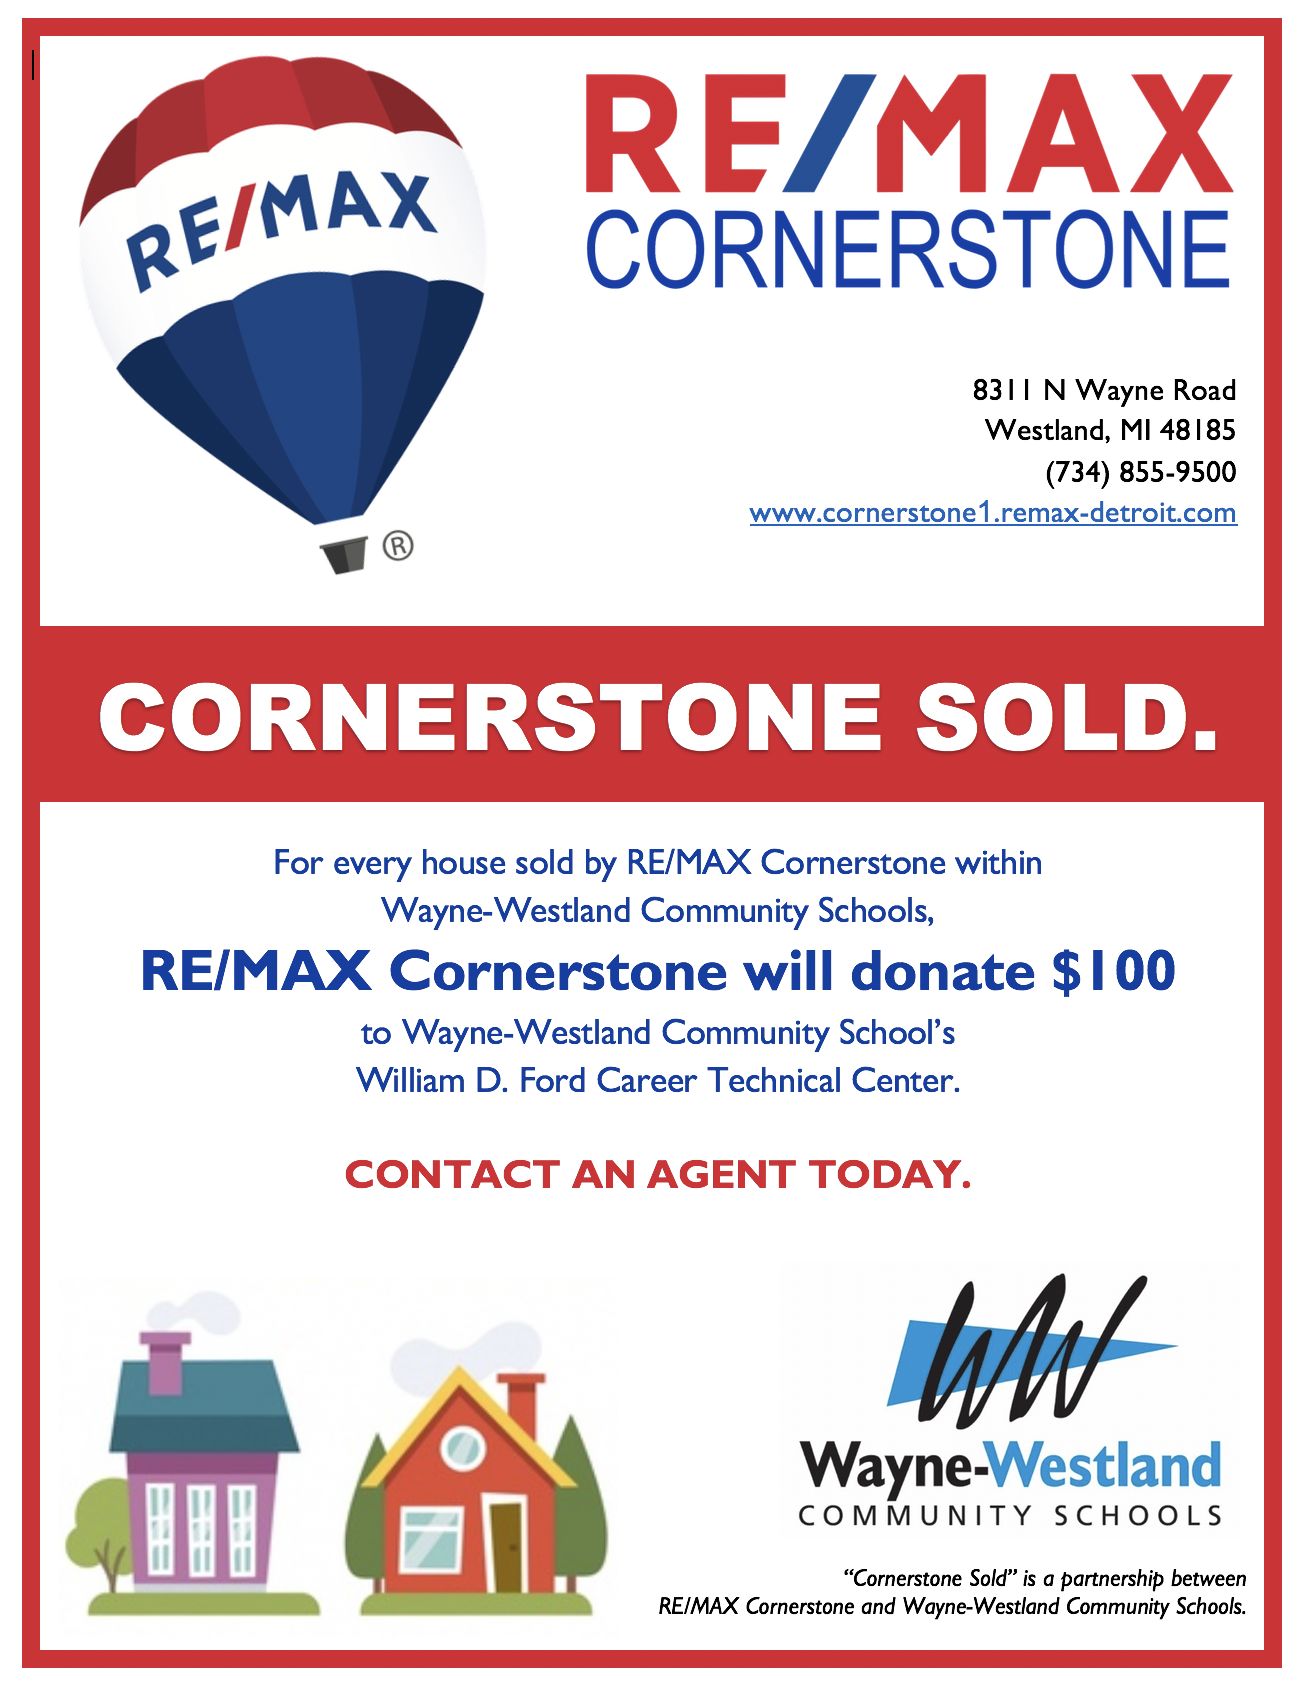 2019-06-20 - ReMax Cornerstone Announcement